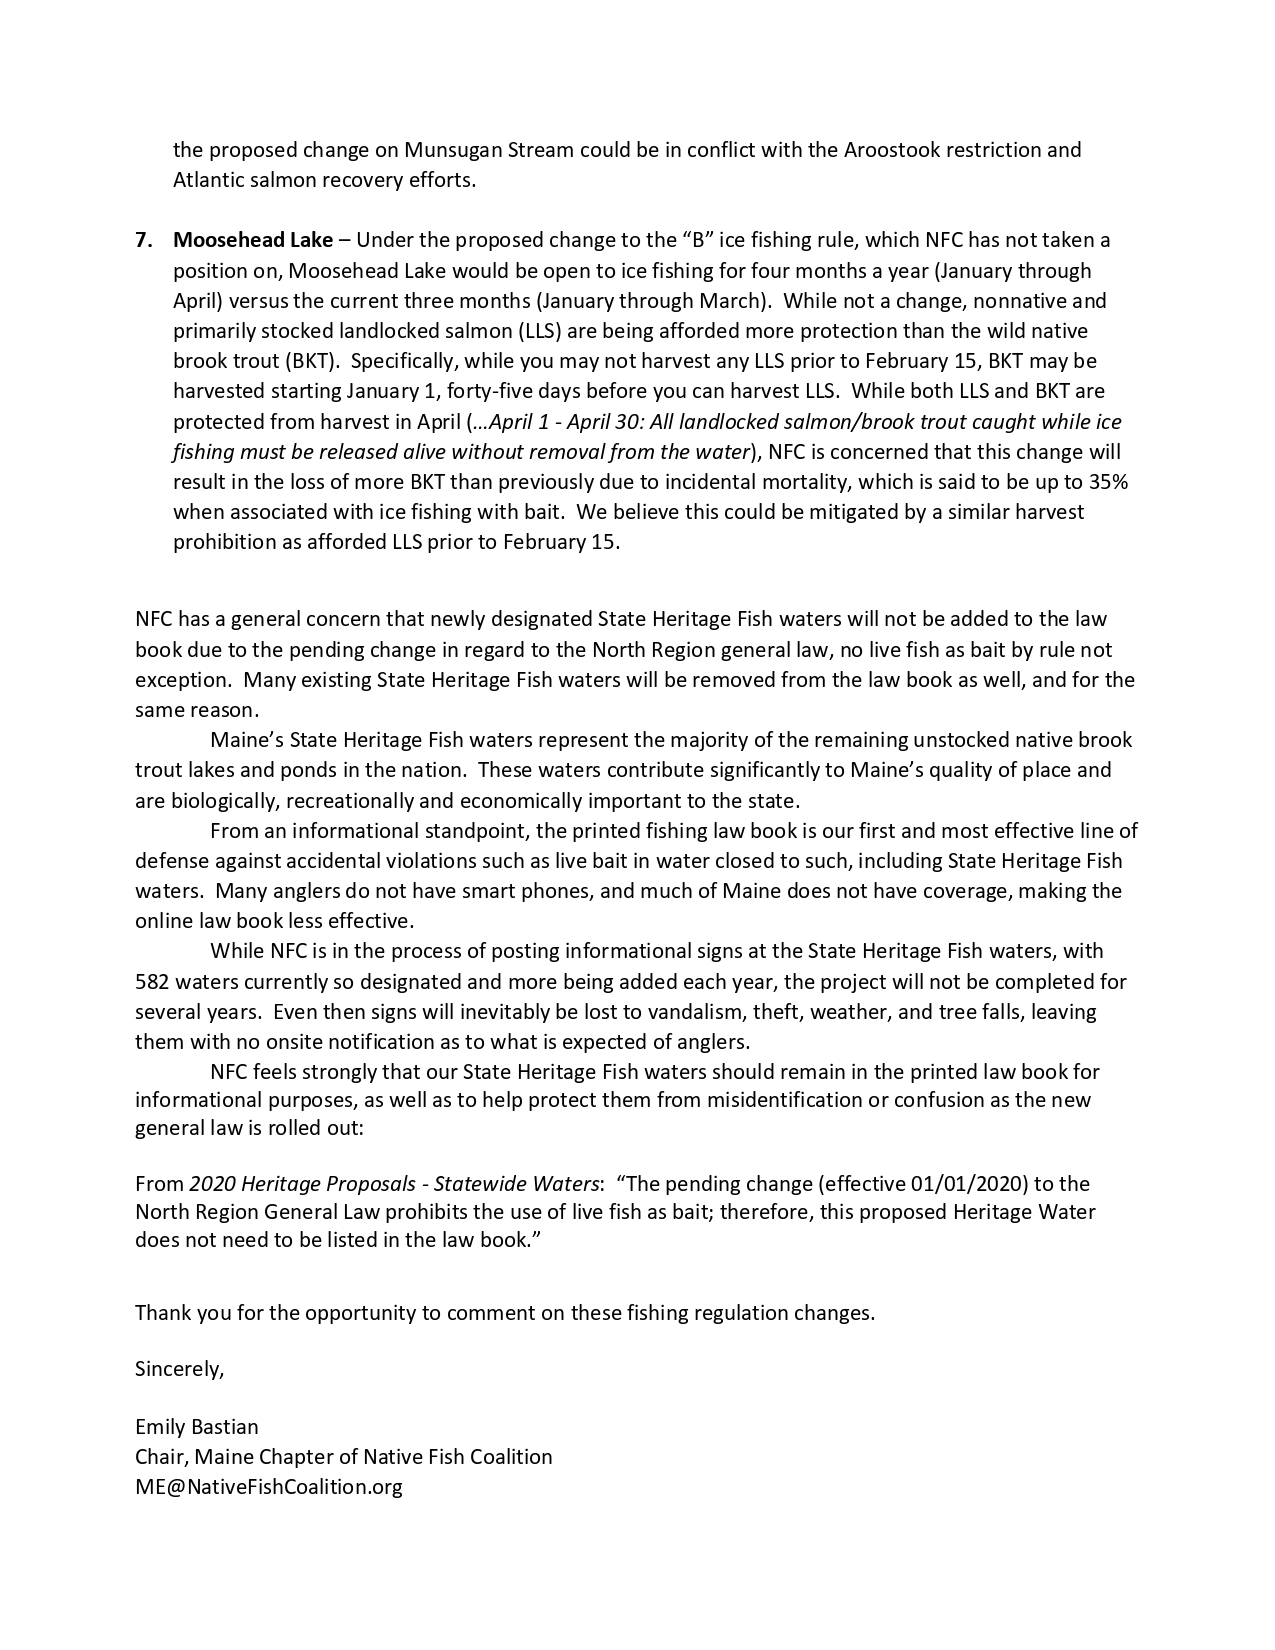 IFW Rulemaking July 2019 - NFC Written Testimony_page-3.jpg